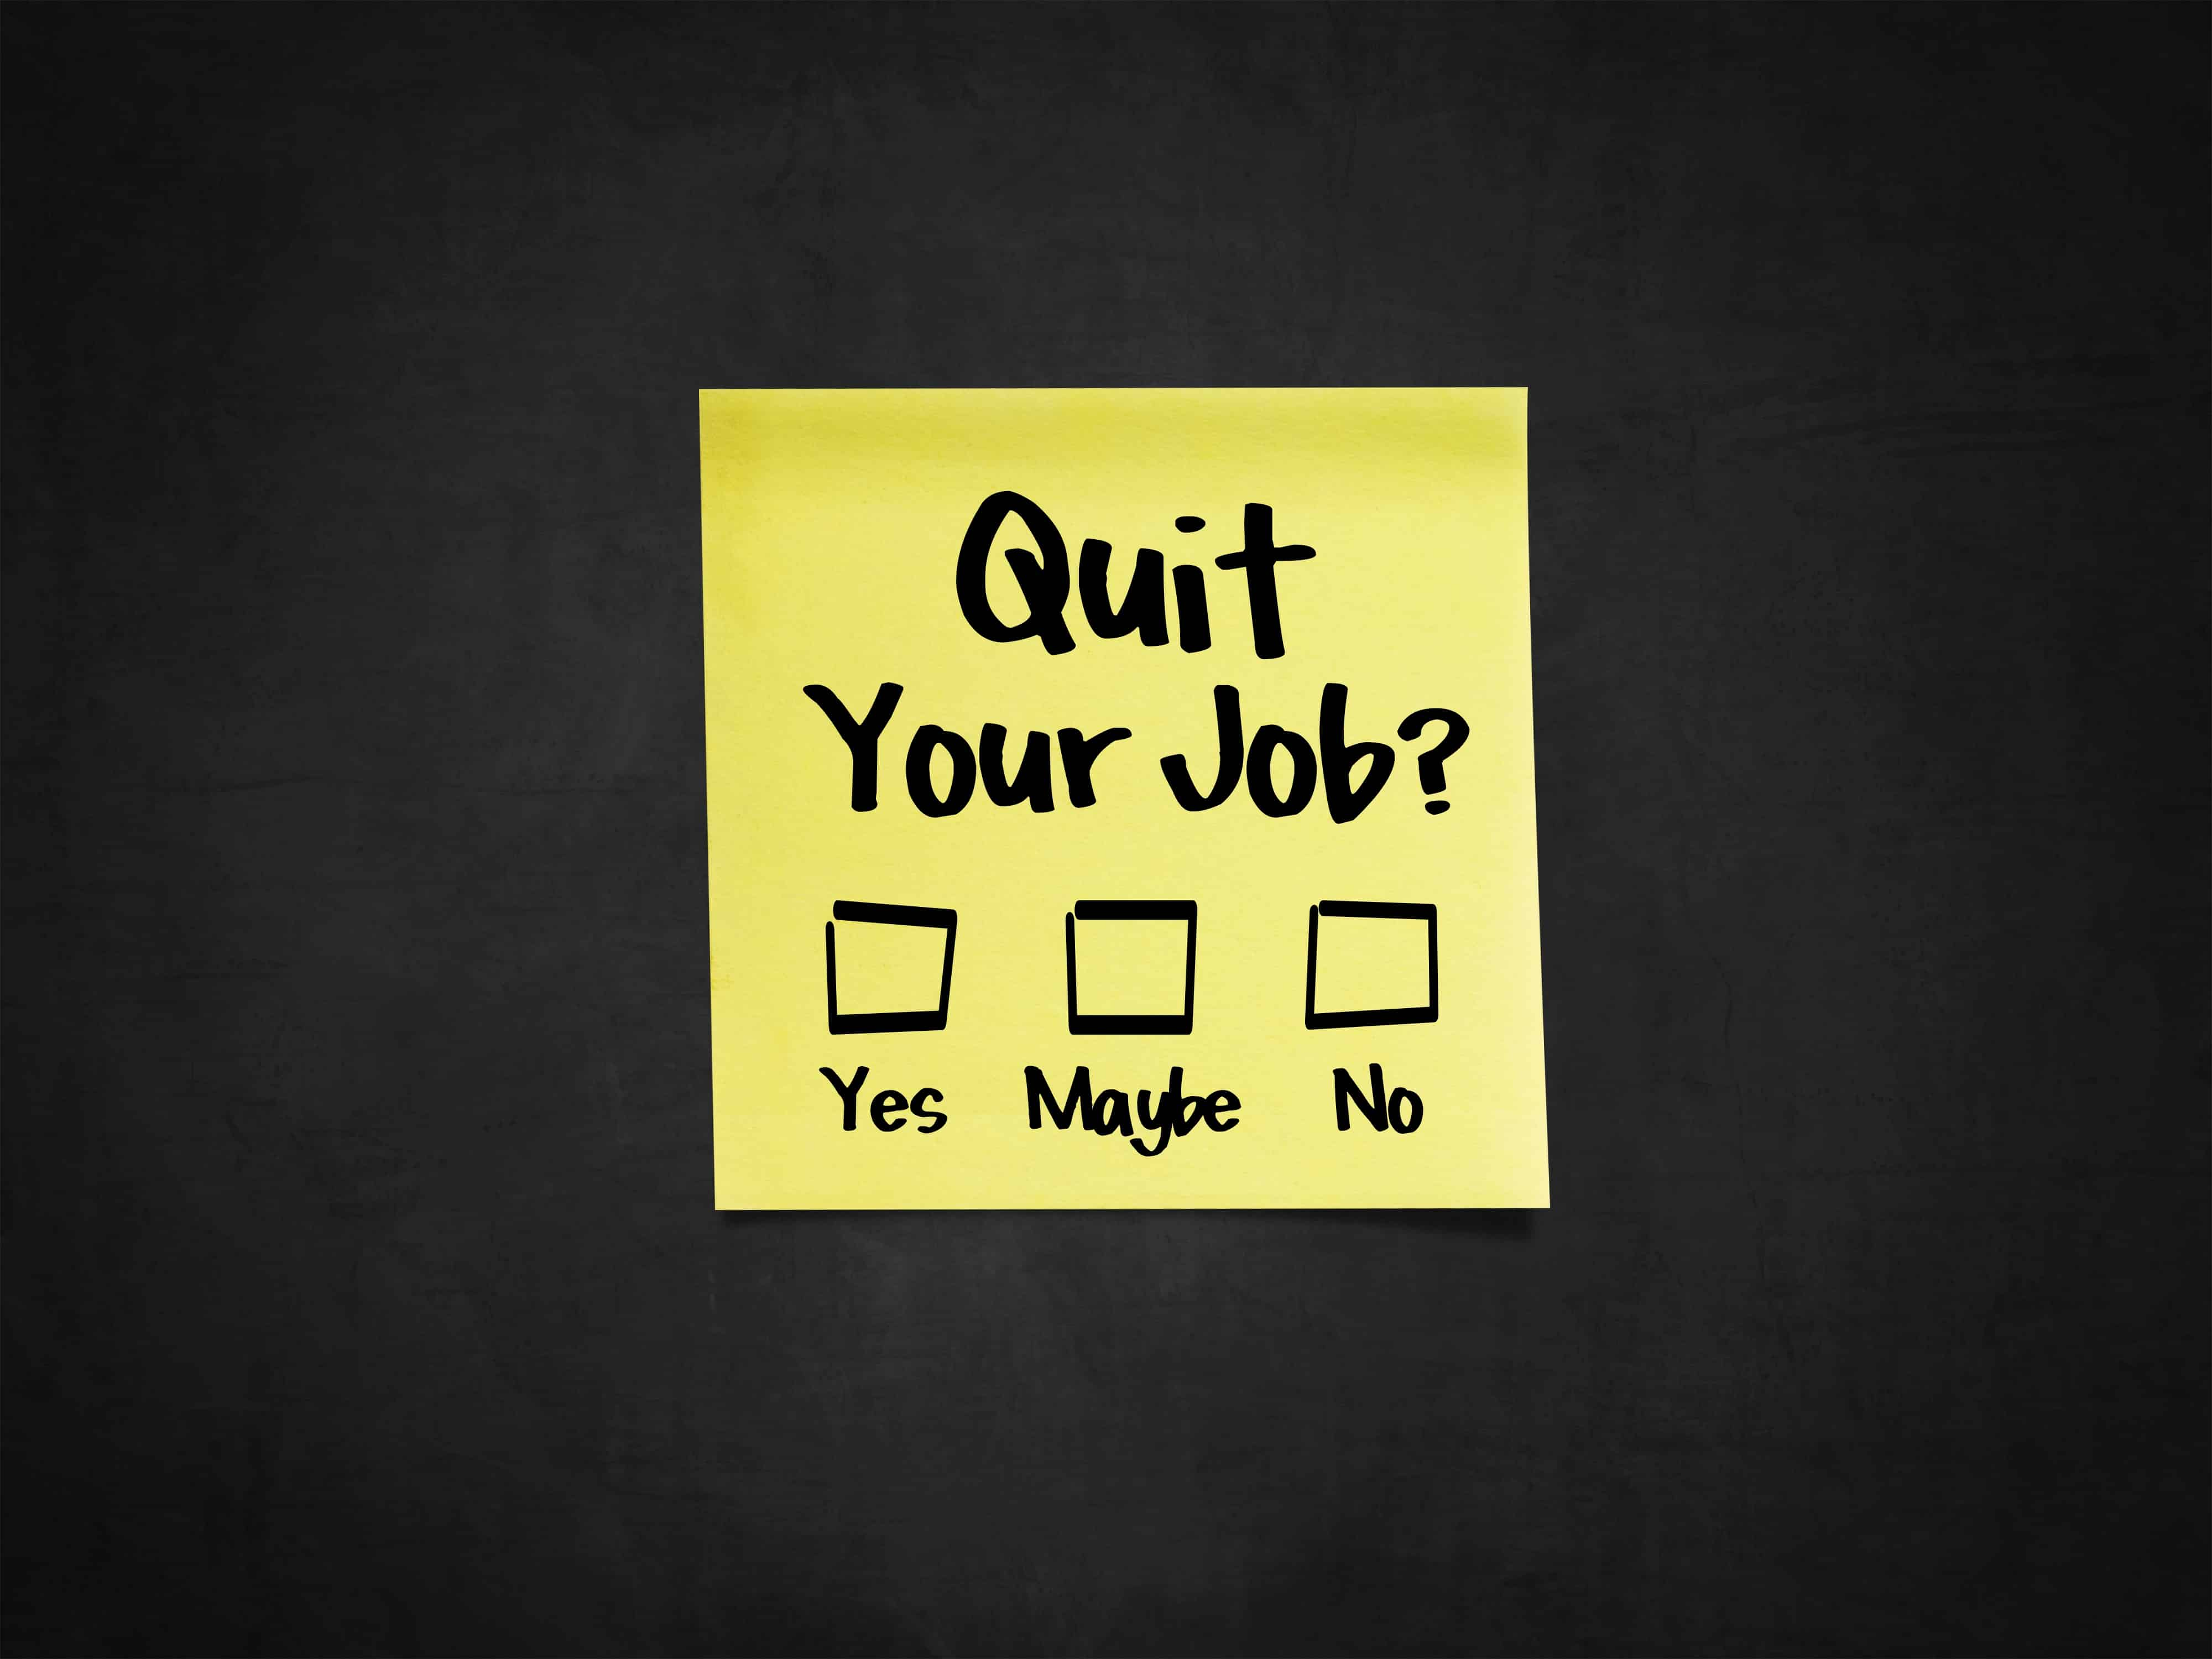 Quitting your job without another lined up